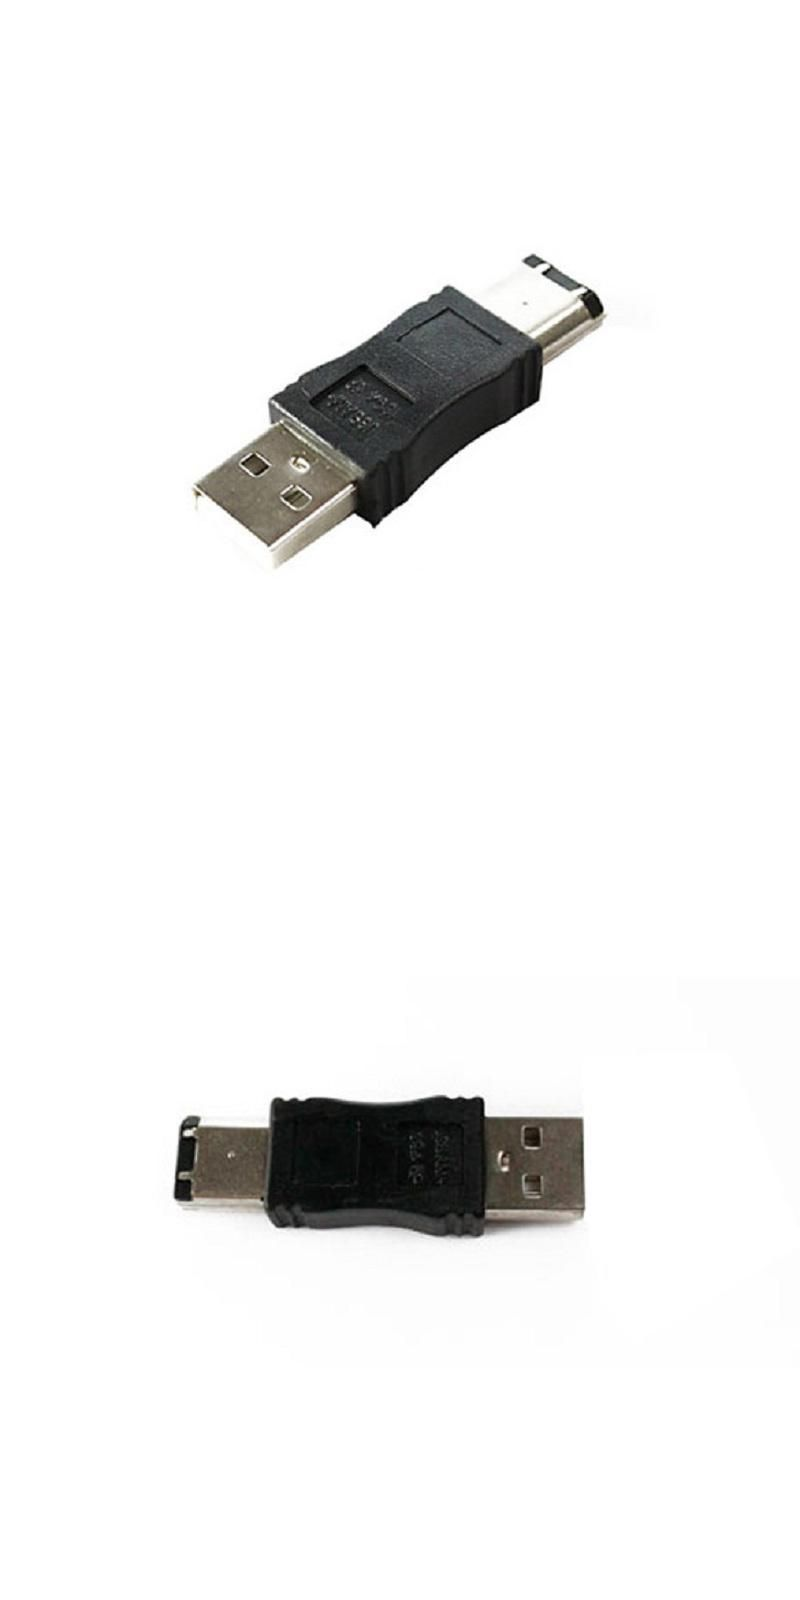 hight resolution of  visit to buy un2f firewire ieee 1394 6p to usb a male adaptor convertor